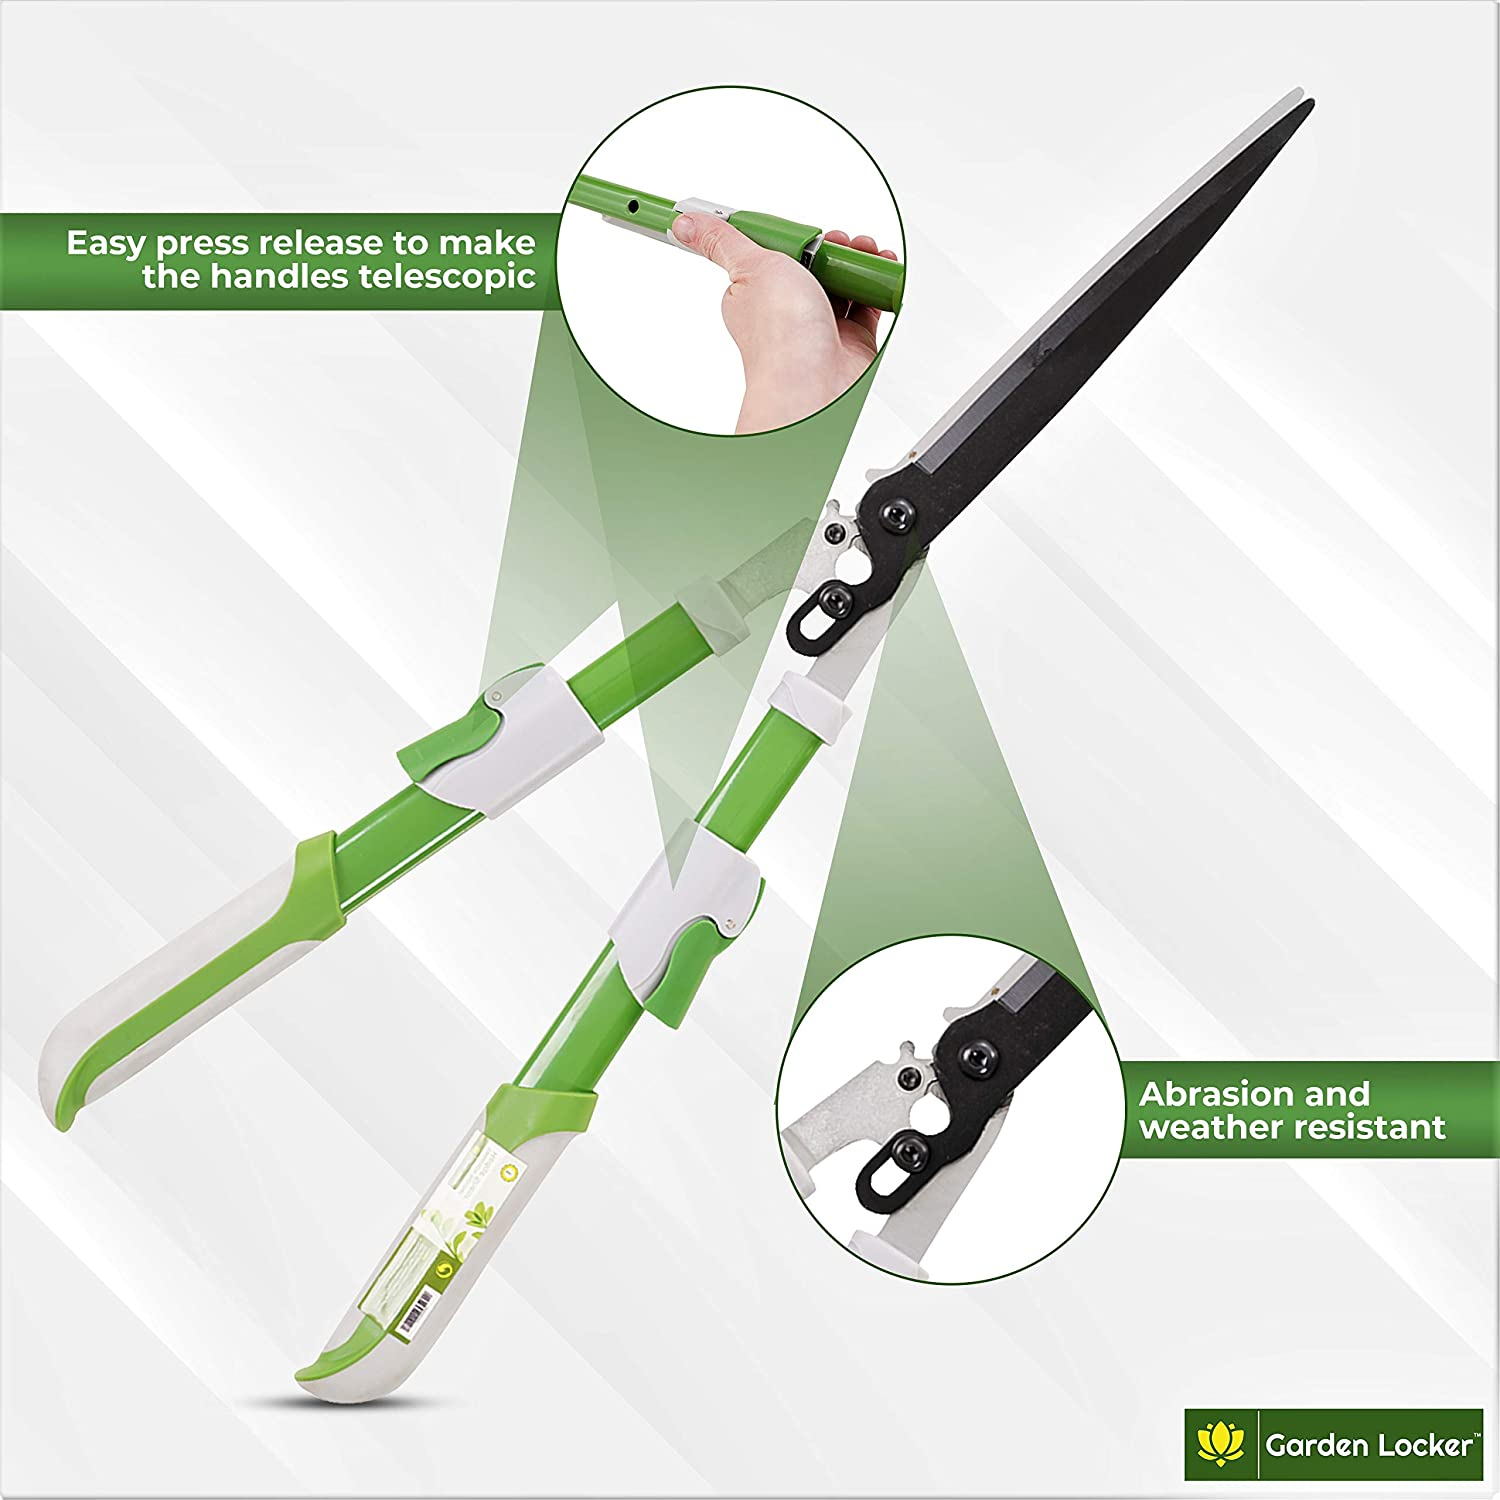 REPEAK Garden Telescopic Ratchet Shears for Outdoor Pruning of Trees Branches and Hedges Extends from 74cm to 89cm with Non Stick Blades Aluminium Handles /& TPR Plastic Grips